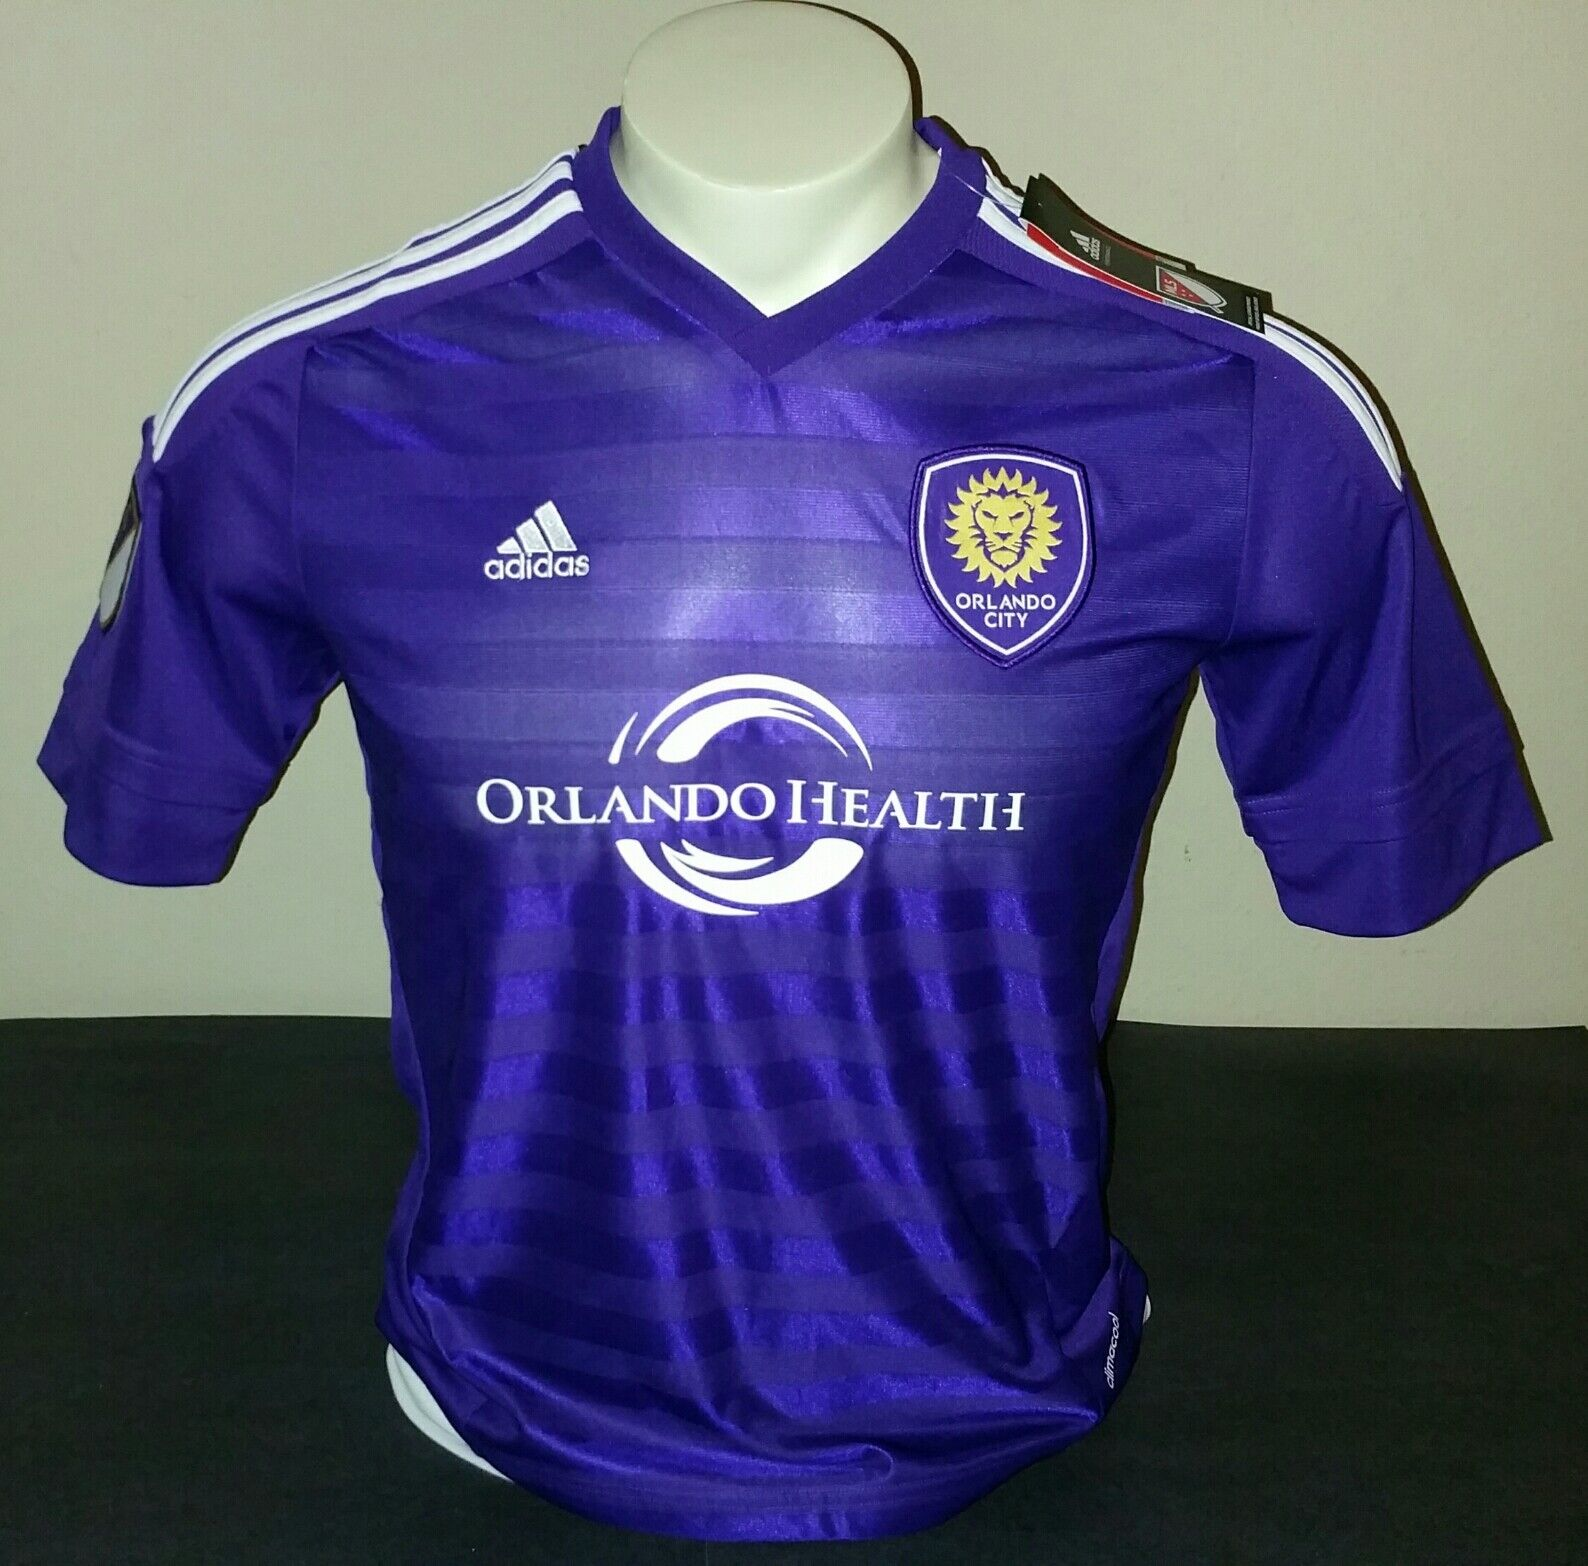 Adidas Orlando City Youth Home Jersey, Purple White, Size YXL